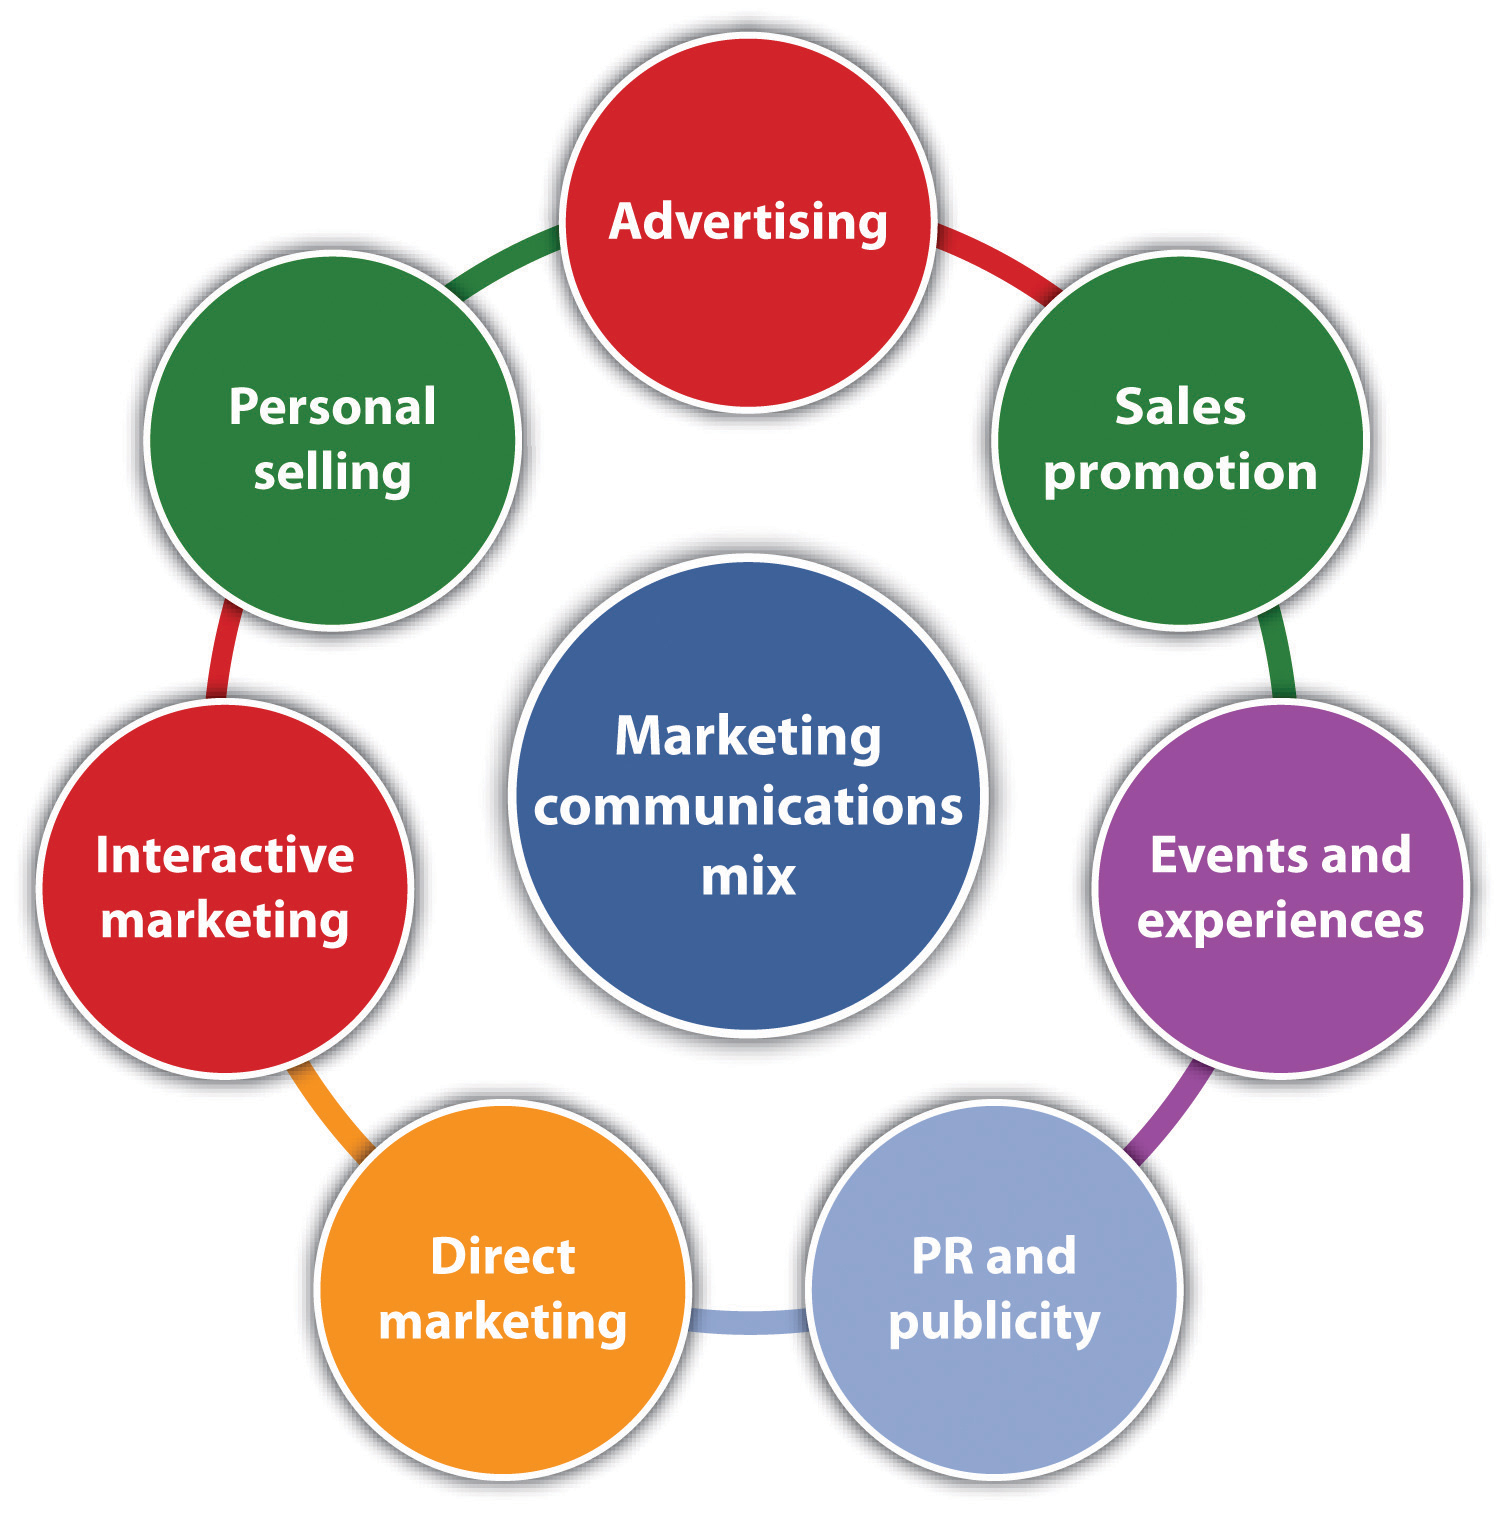 Figure 7.7 The Marketing